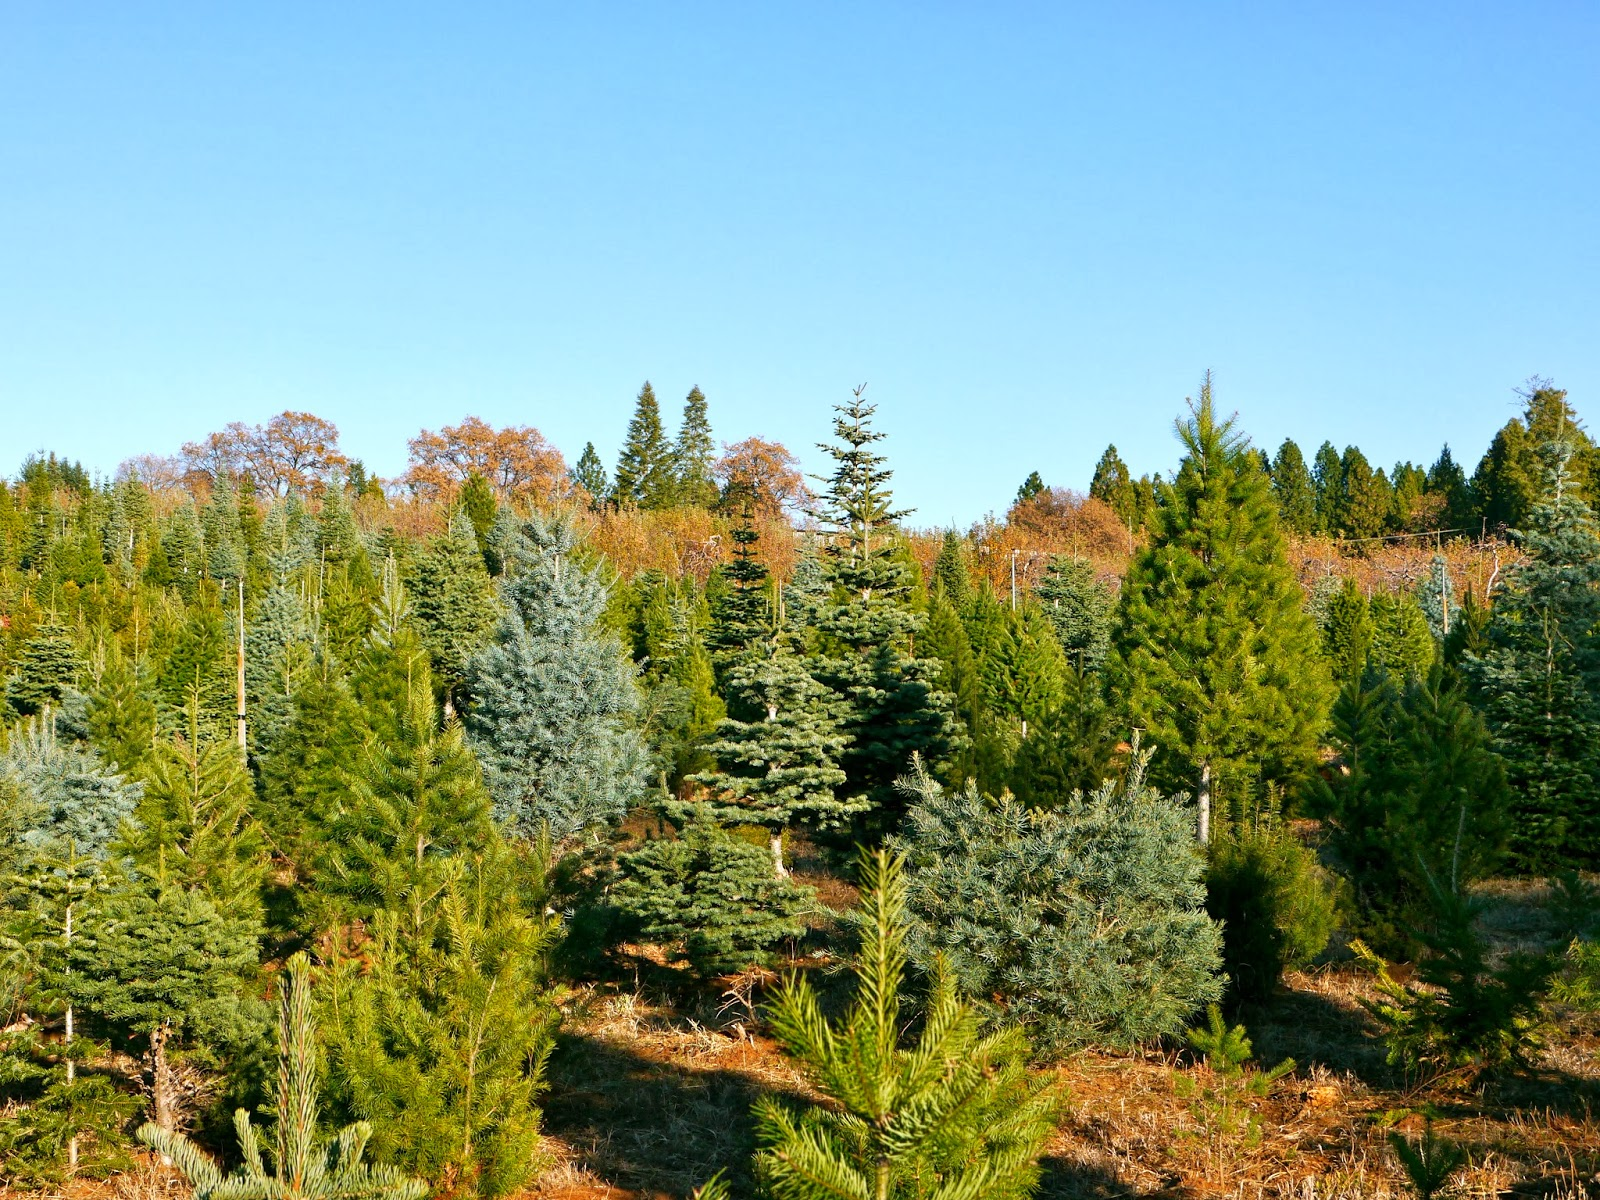 for the upcoming christmas season apple hill also has several christmas tree farms and though we did not get a tree till elsewhere later in the evening